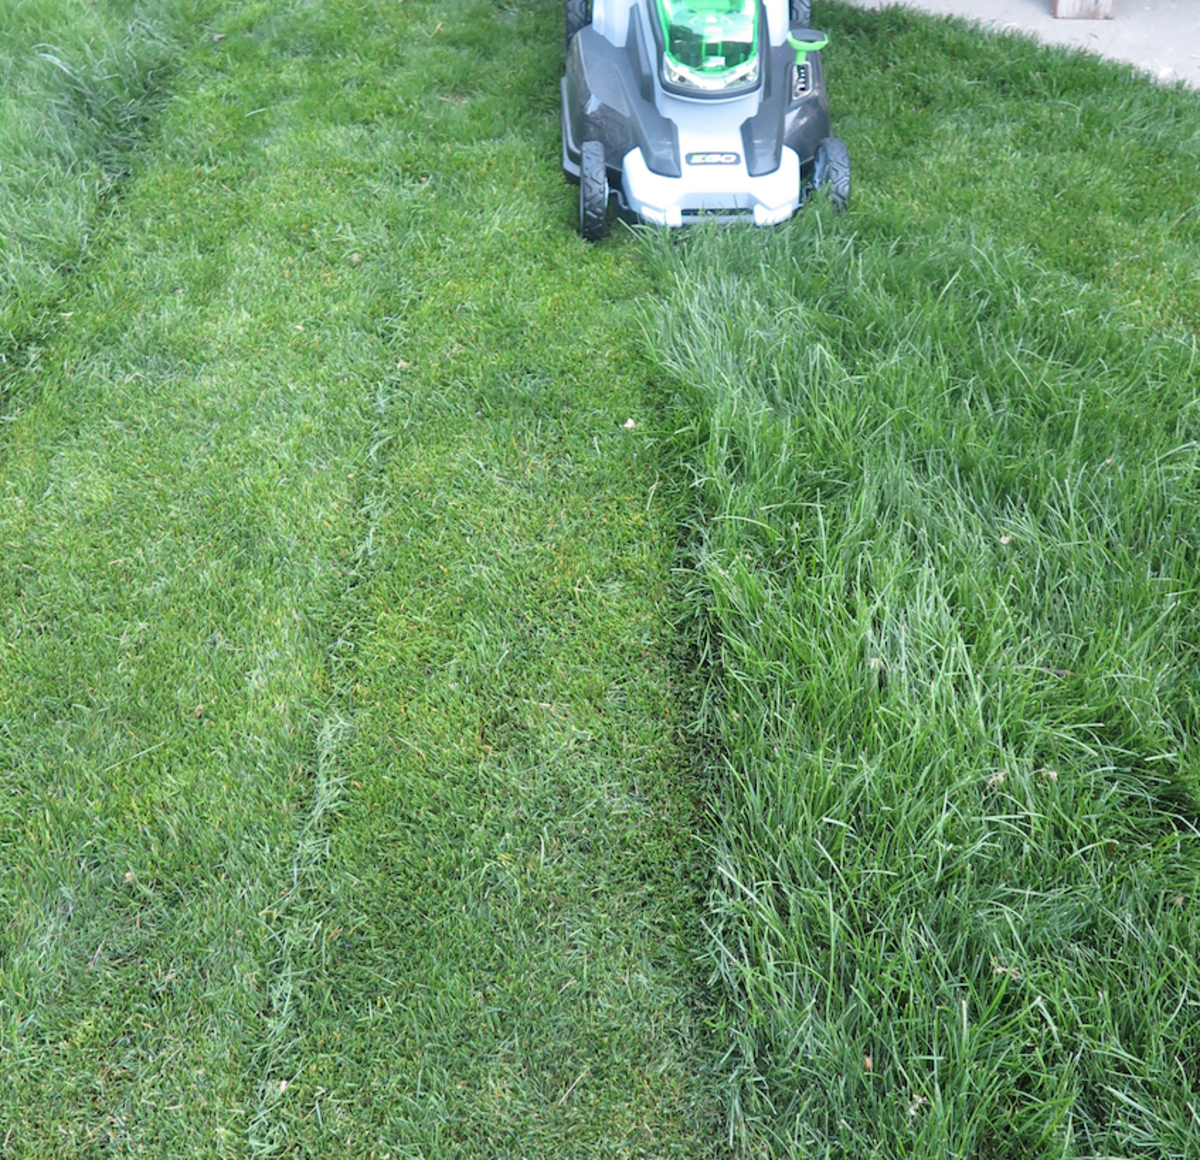 Ego Electric Mower Review